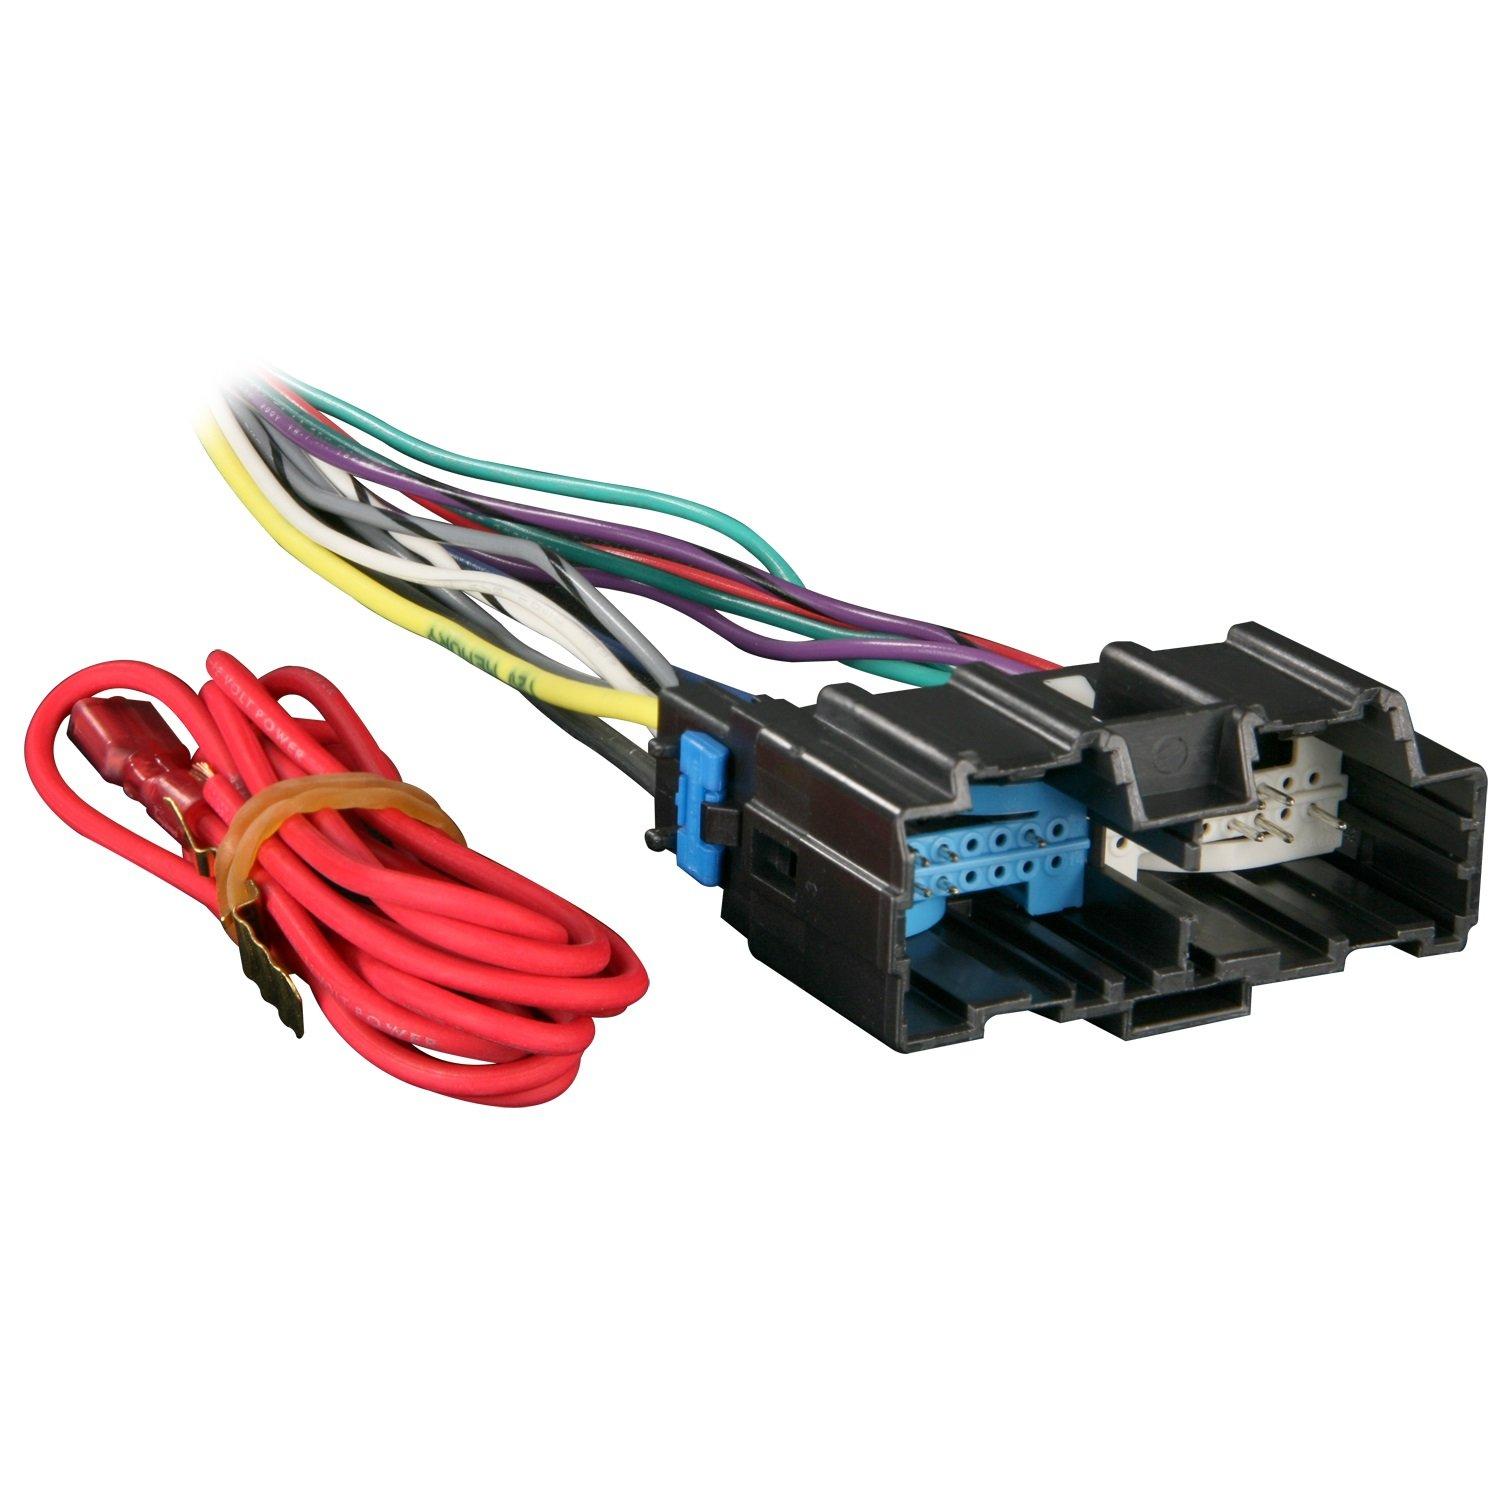 71ZzH dyg7L._SL1500_ amazon com metra 70 2105 radio wiring harness for impala monte chevy aveo stereo wiring harness at webbmarketing.co